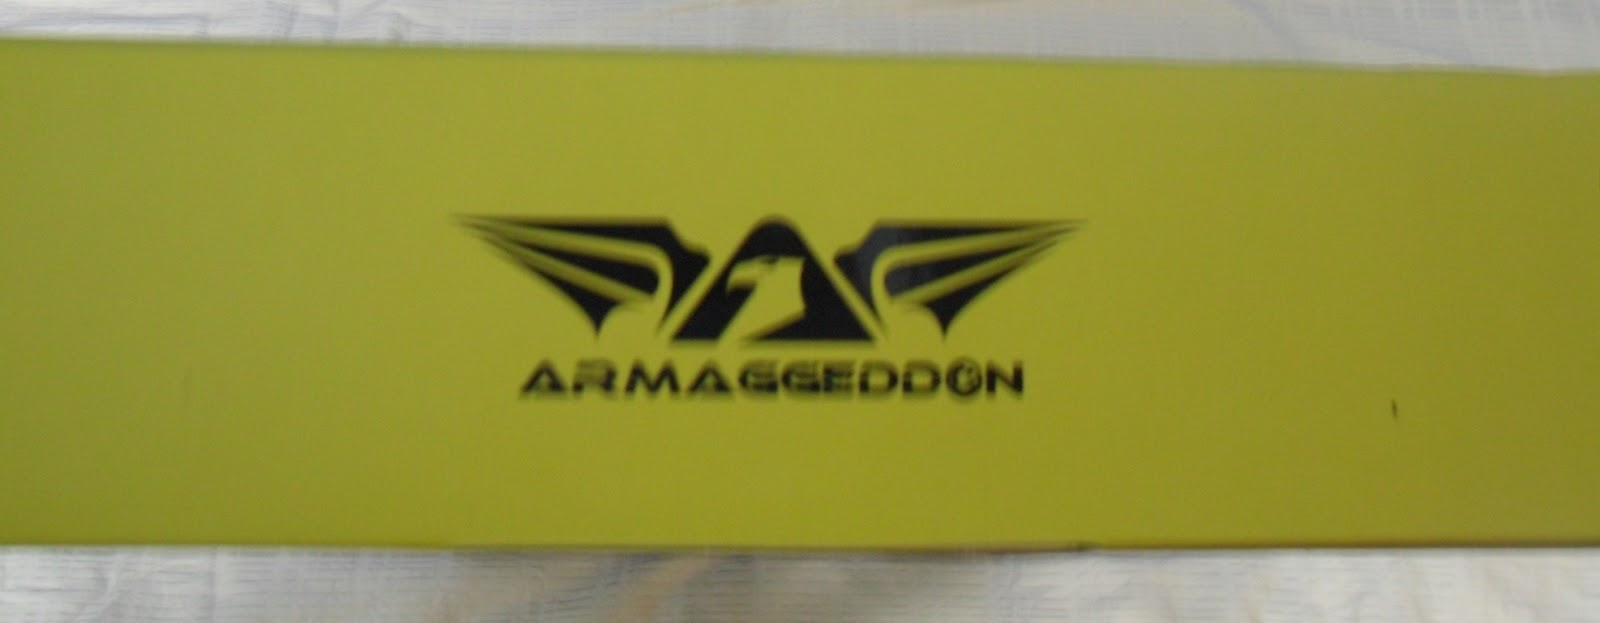 Unboxing & Review: Armaggeddon Taranis Kai-13 Gaming Keyboard 54